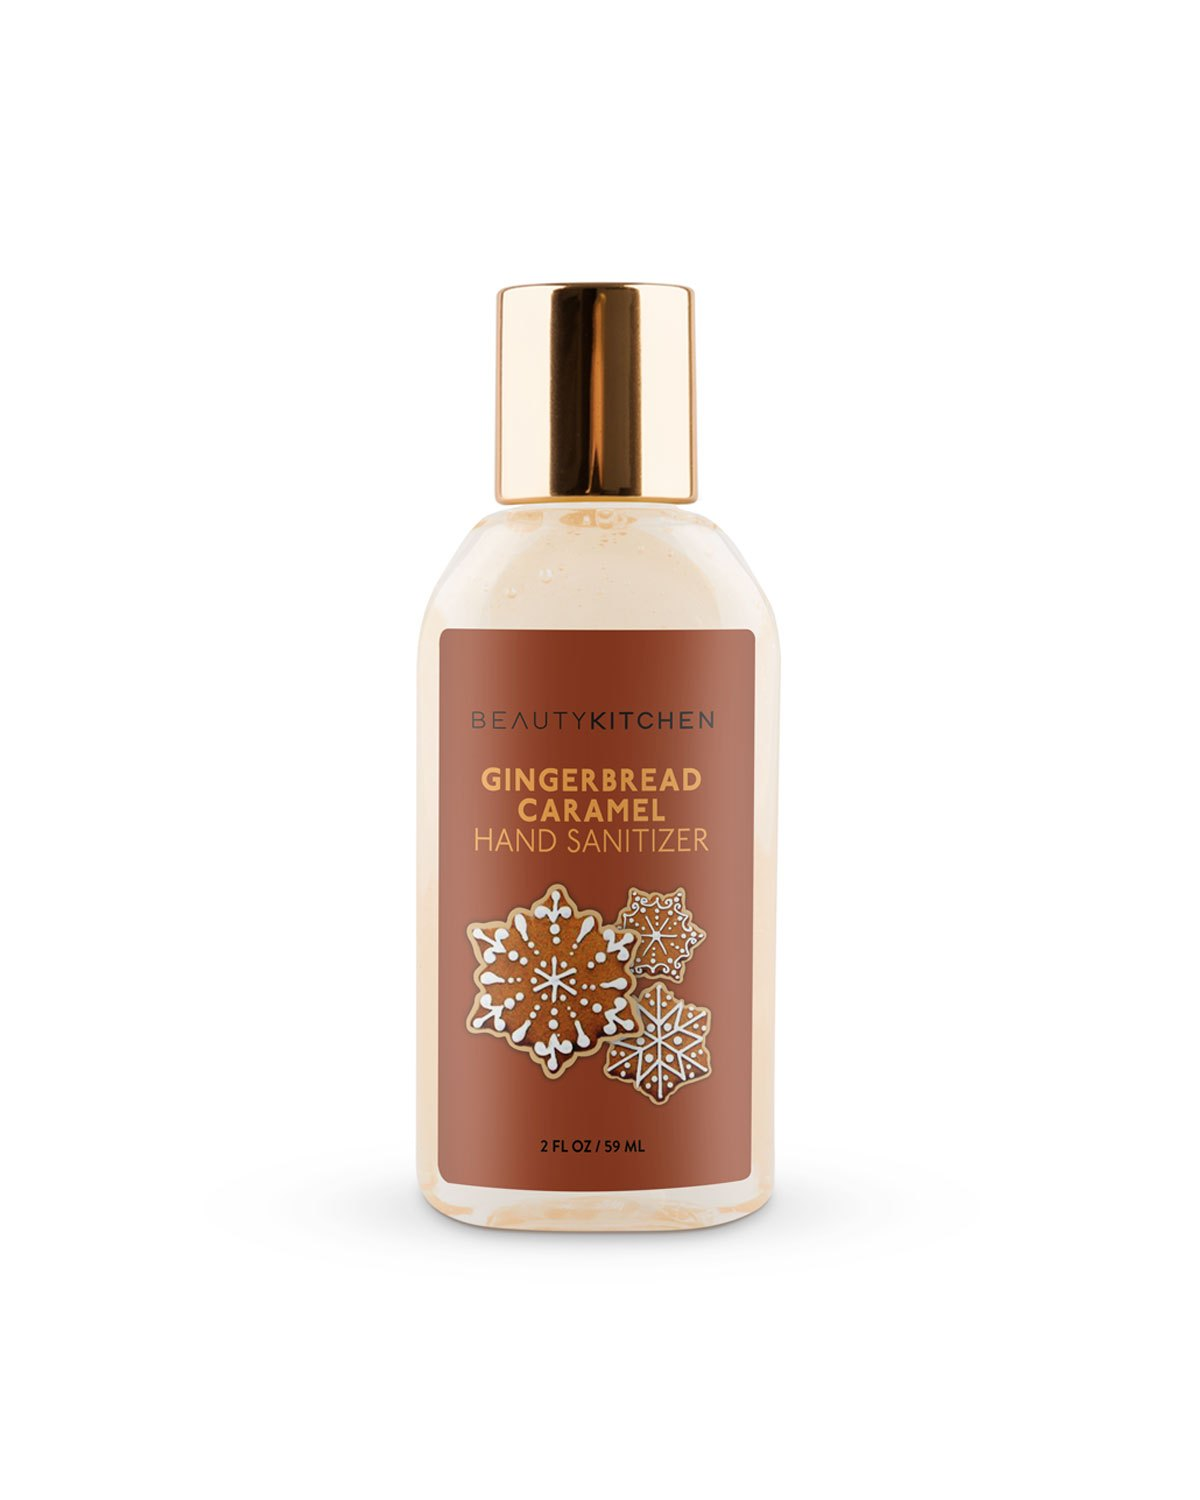 Gingerbread Caramel Hand Sanitizer 2oz